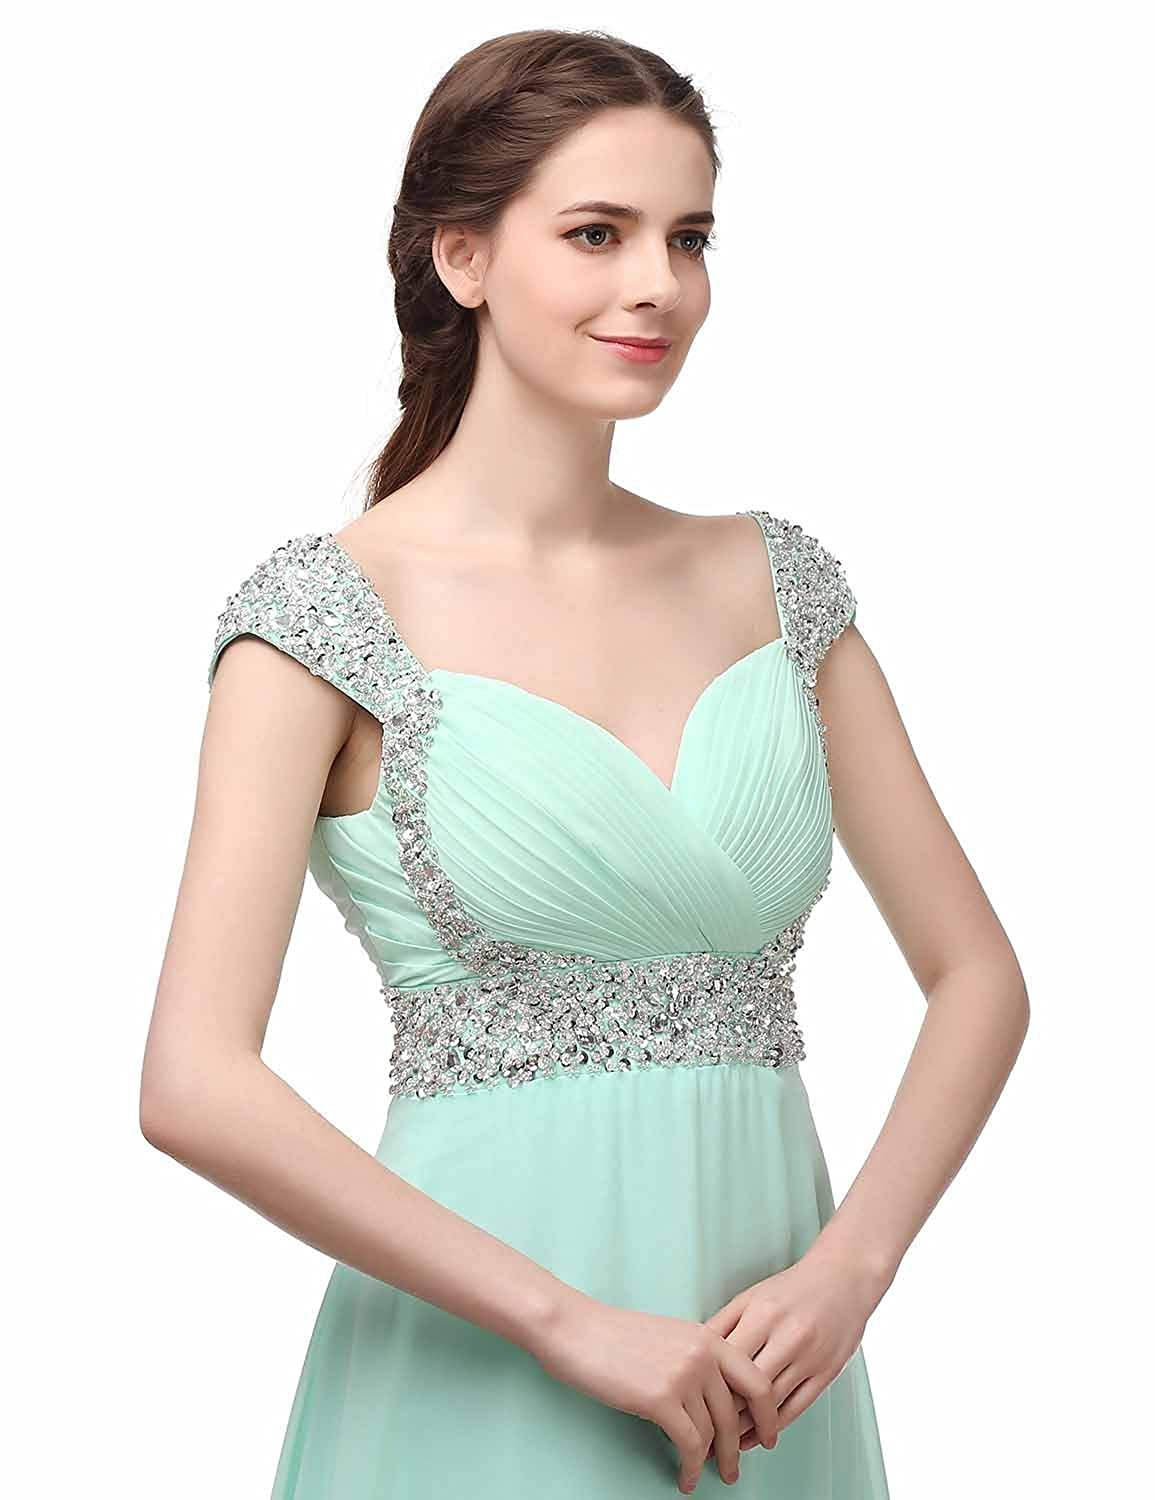 Monalia Womens Beaded Chiffon Long Prom Dresses 2018 Formal Bridesmaid Gown P022 at Amazon Womens Clothing store: